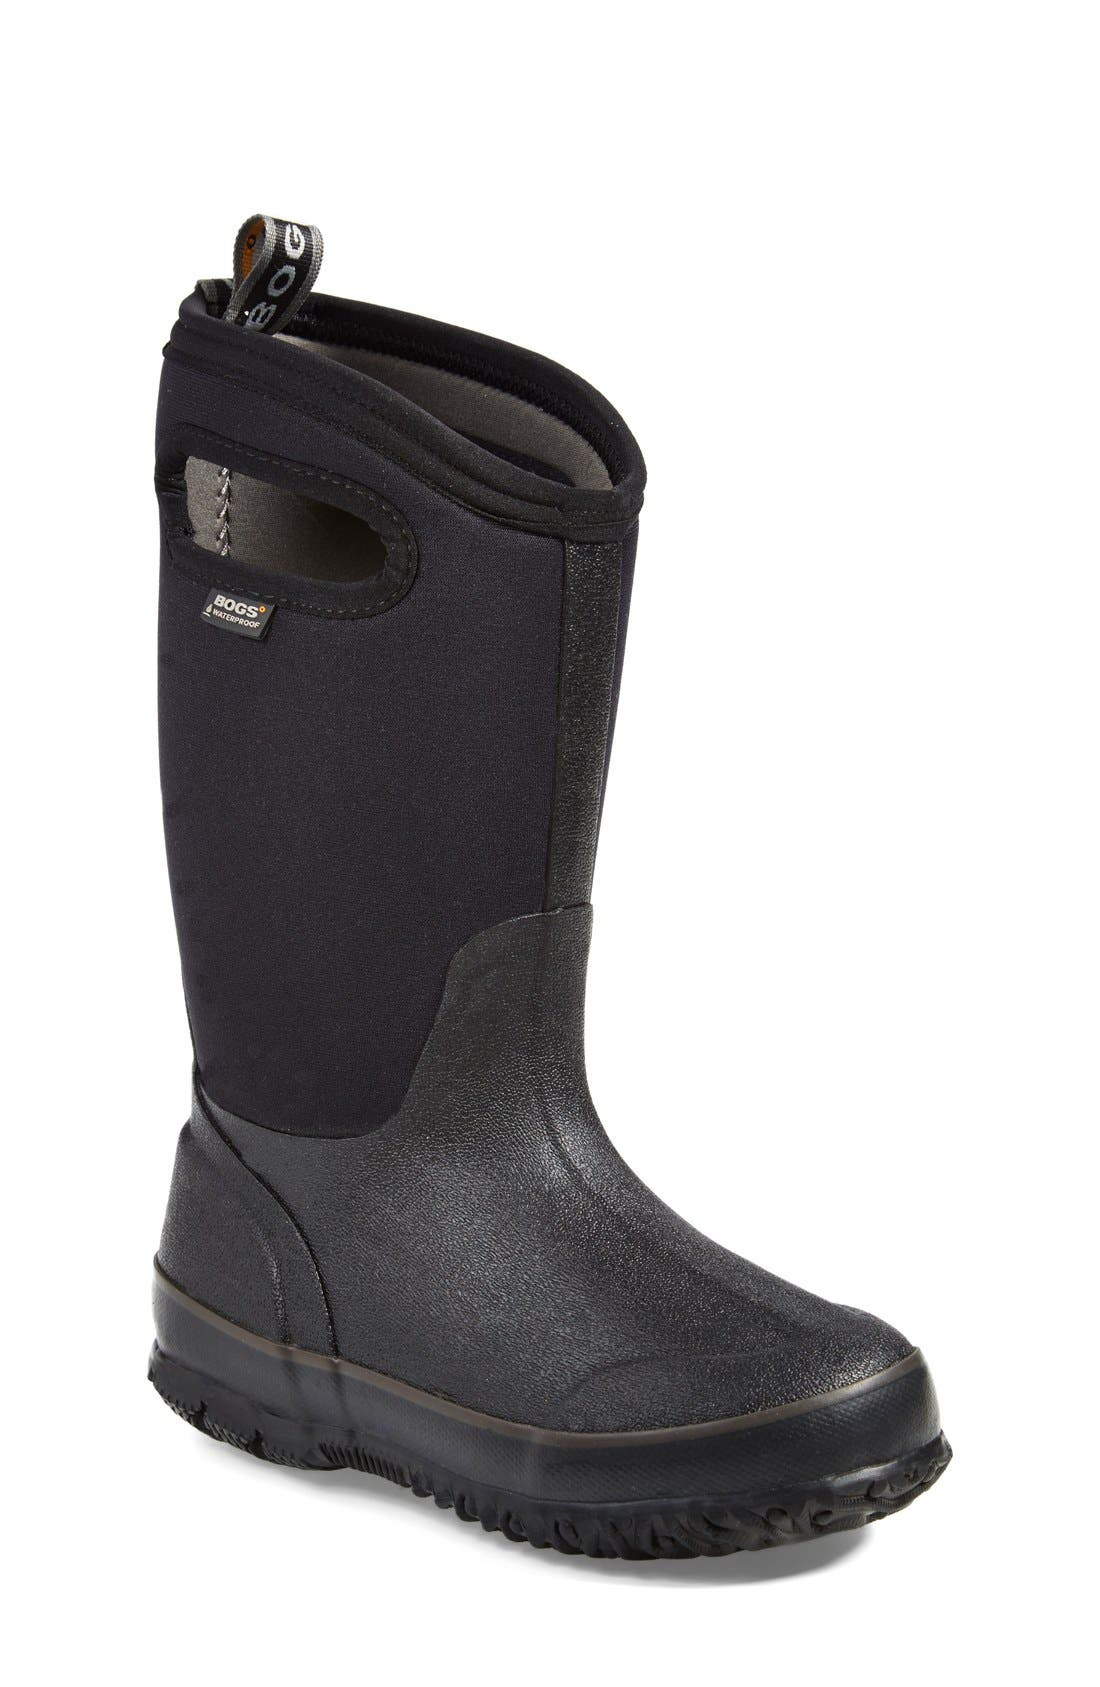 Main Image - Bogs 'Classic High' Waterproof Boot (Toddler, Little Kid & Big Kid)